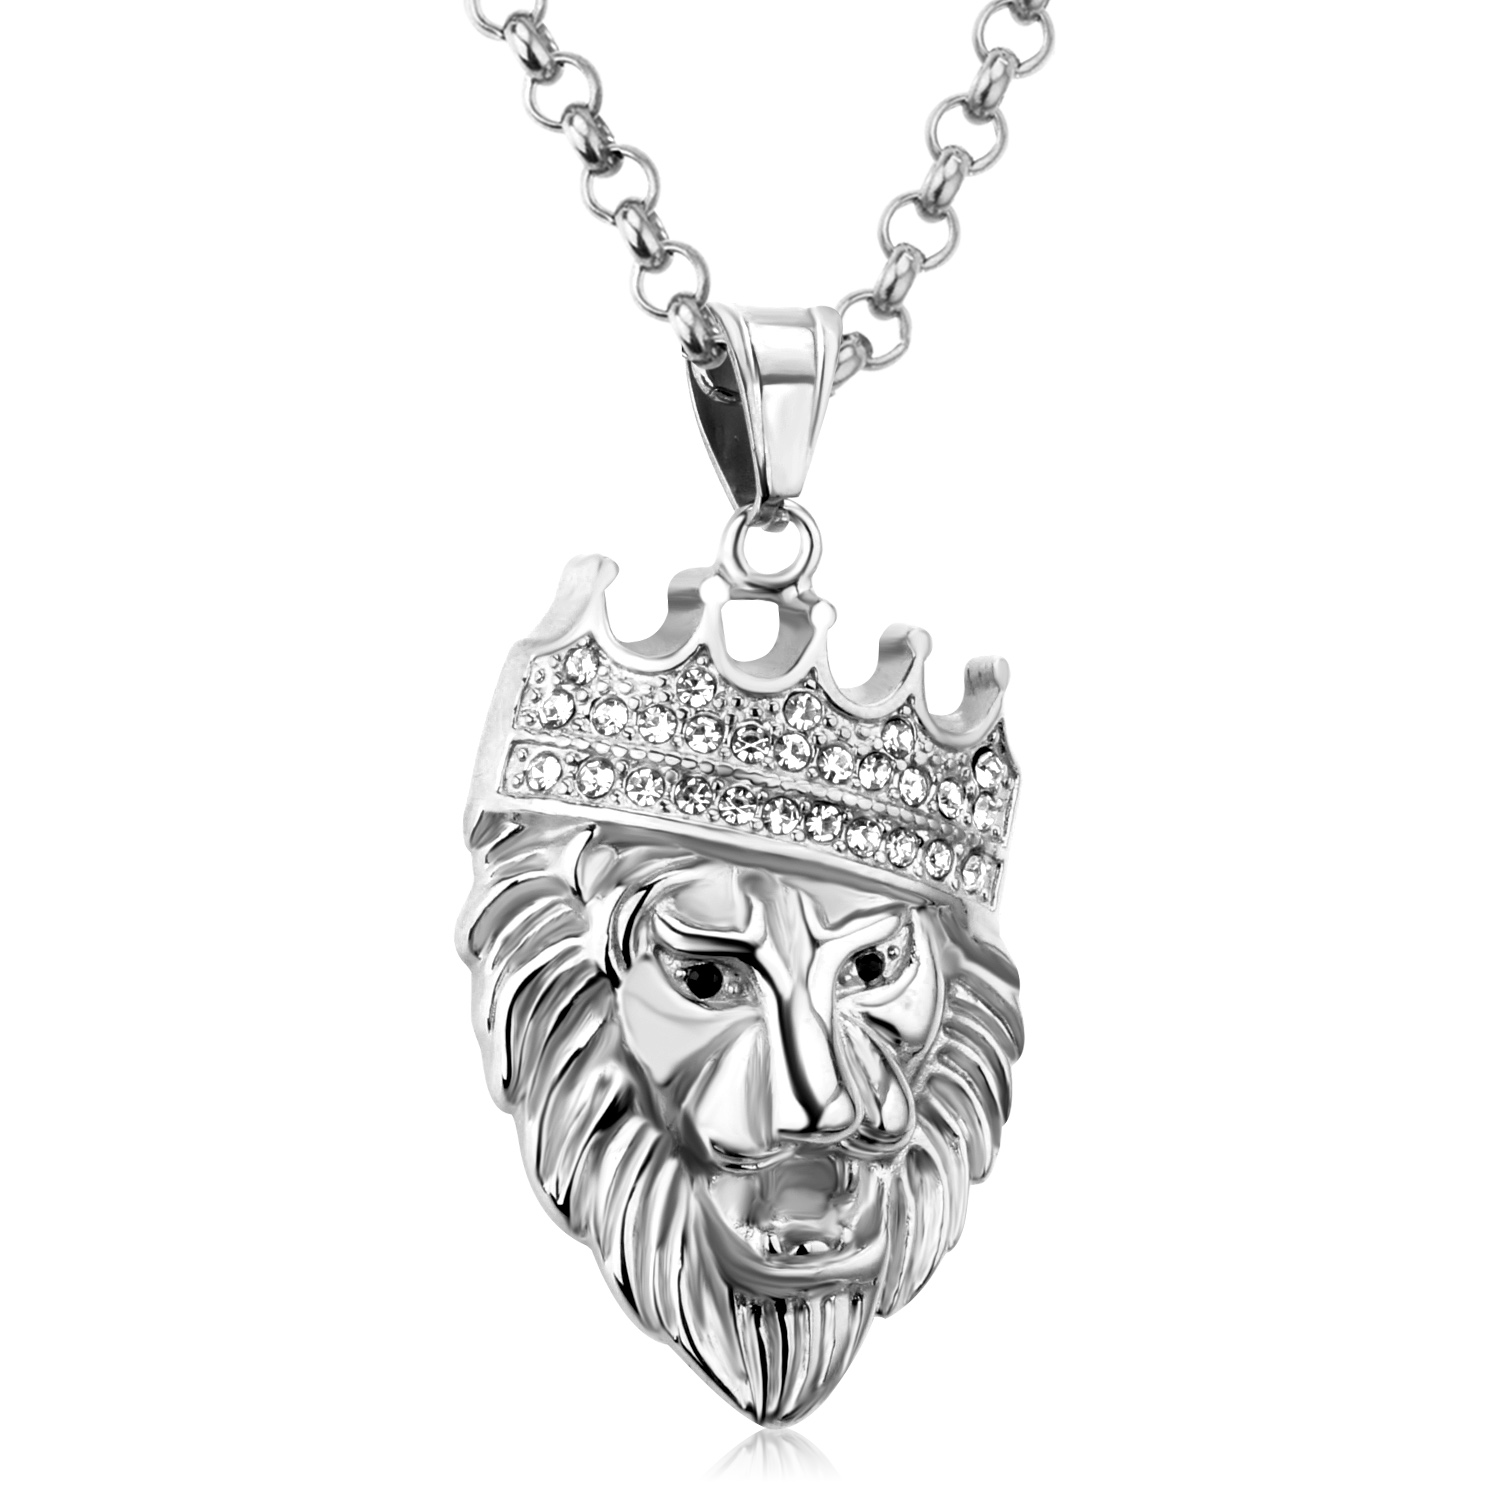 men and store domineering fashion jewelry back mirror states the pendant united necklace ancient gold europe lion s product diy